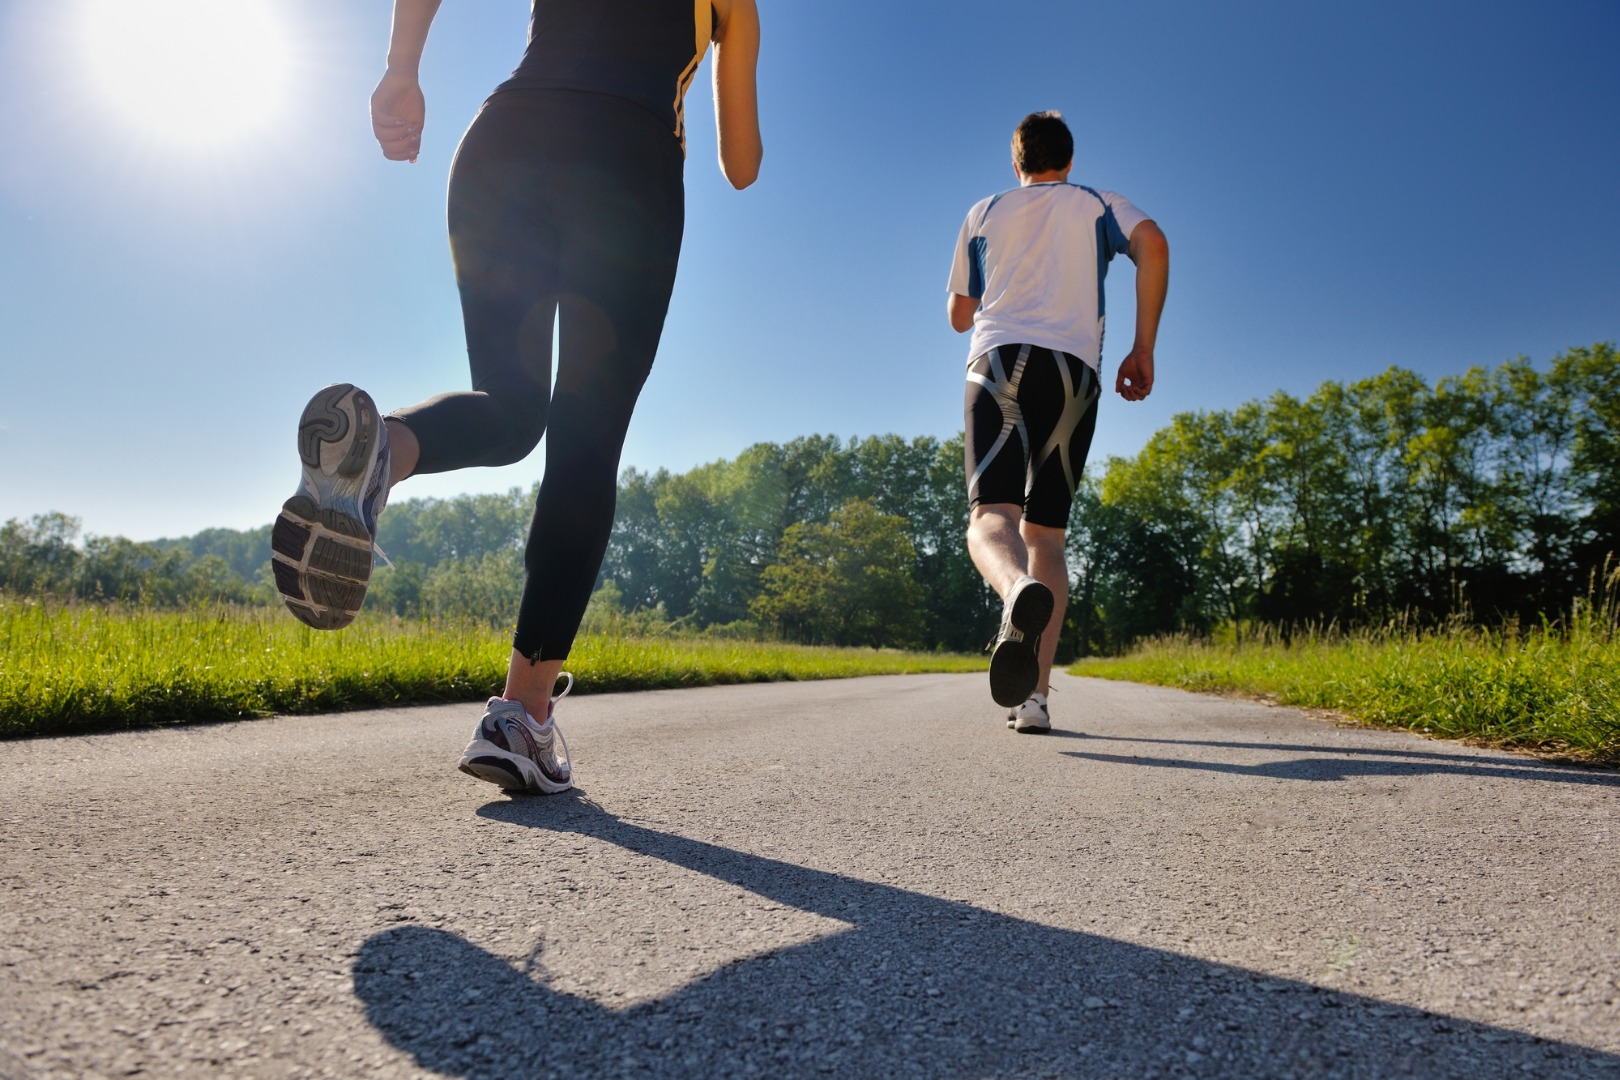 Scientists home in on six forms of exercise to best combat obesity genes